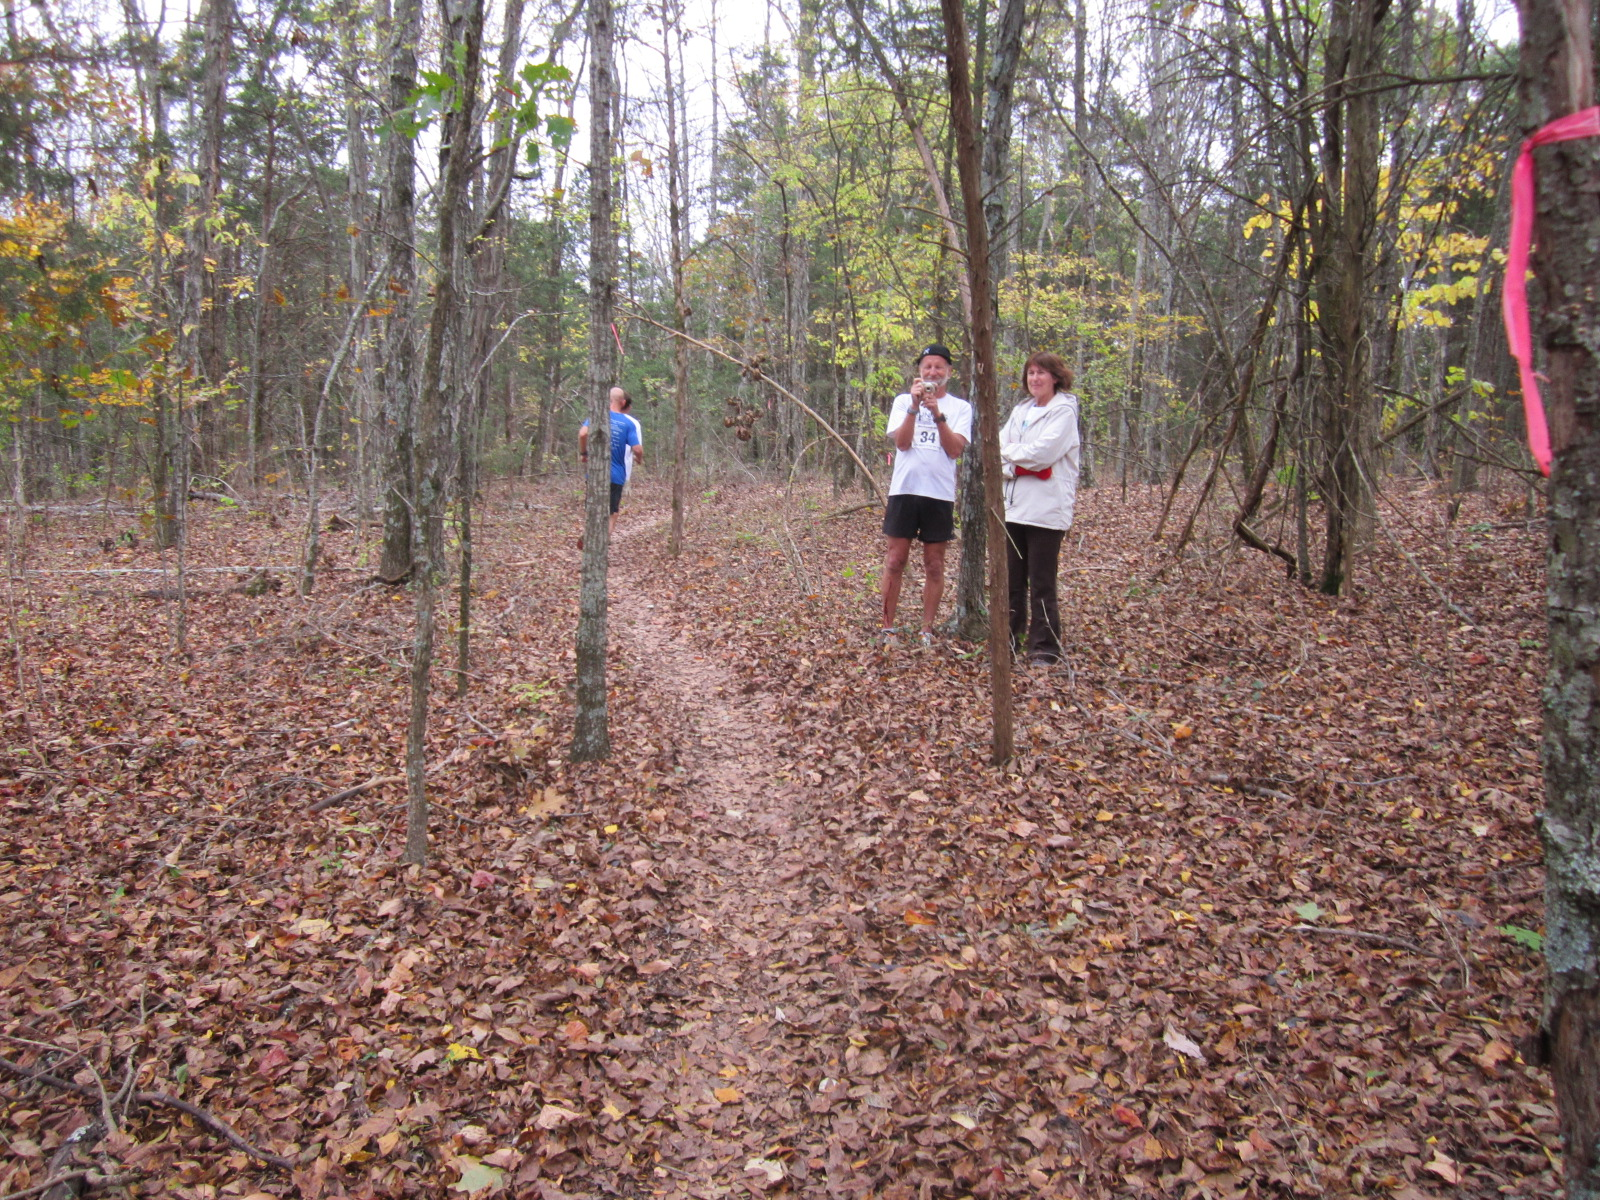 Big Backyard Ultra : Big Backyard Ultra  October 18, 2014